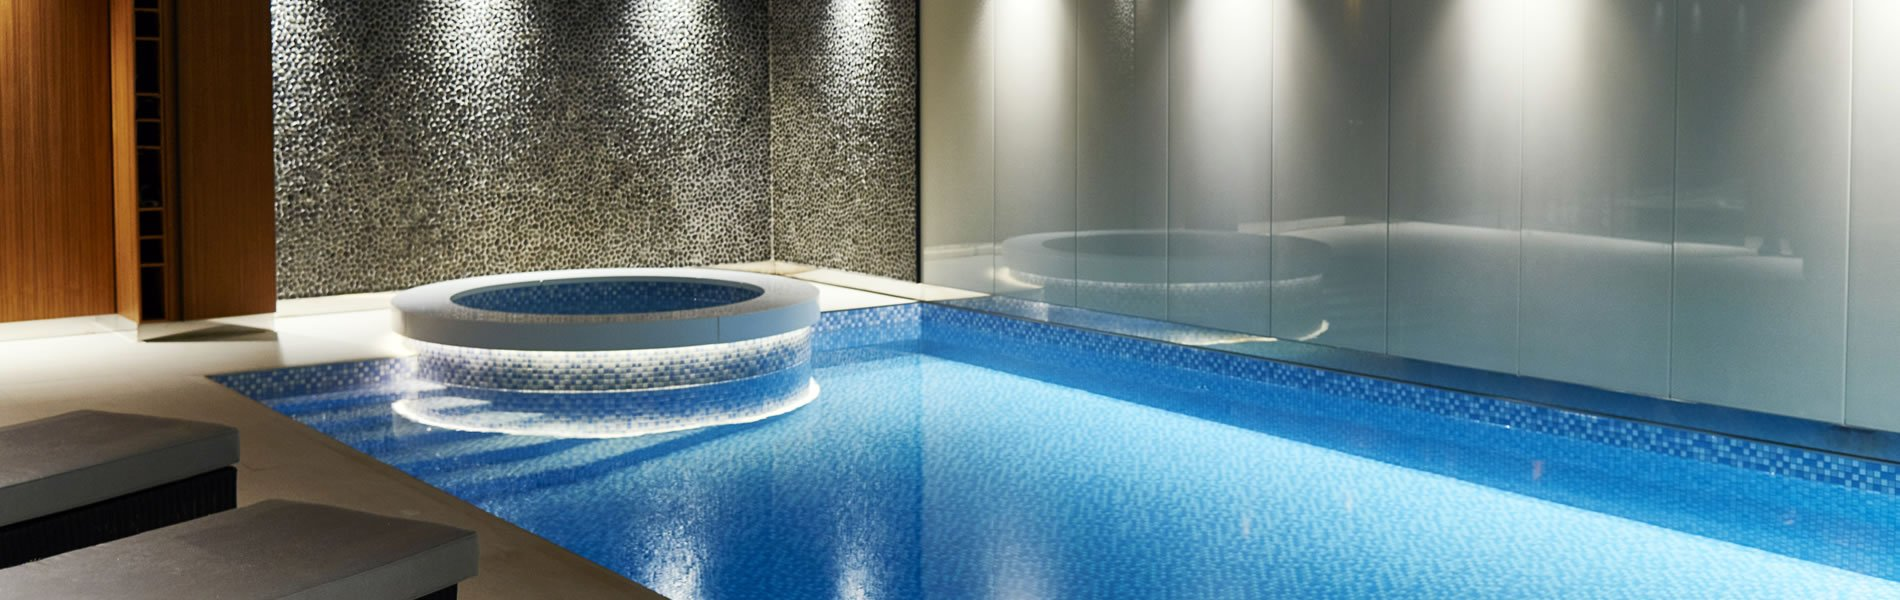 basement swimming pool design mesmerizing contemporary